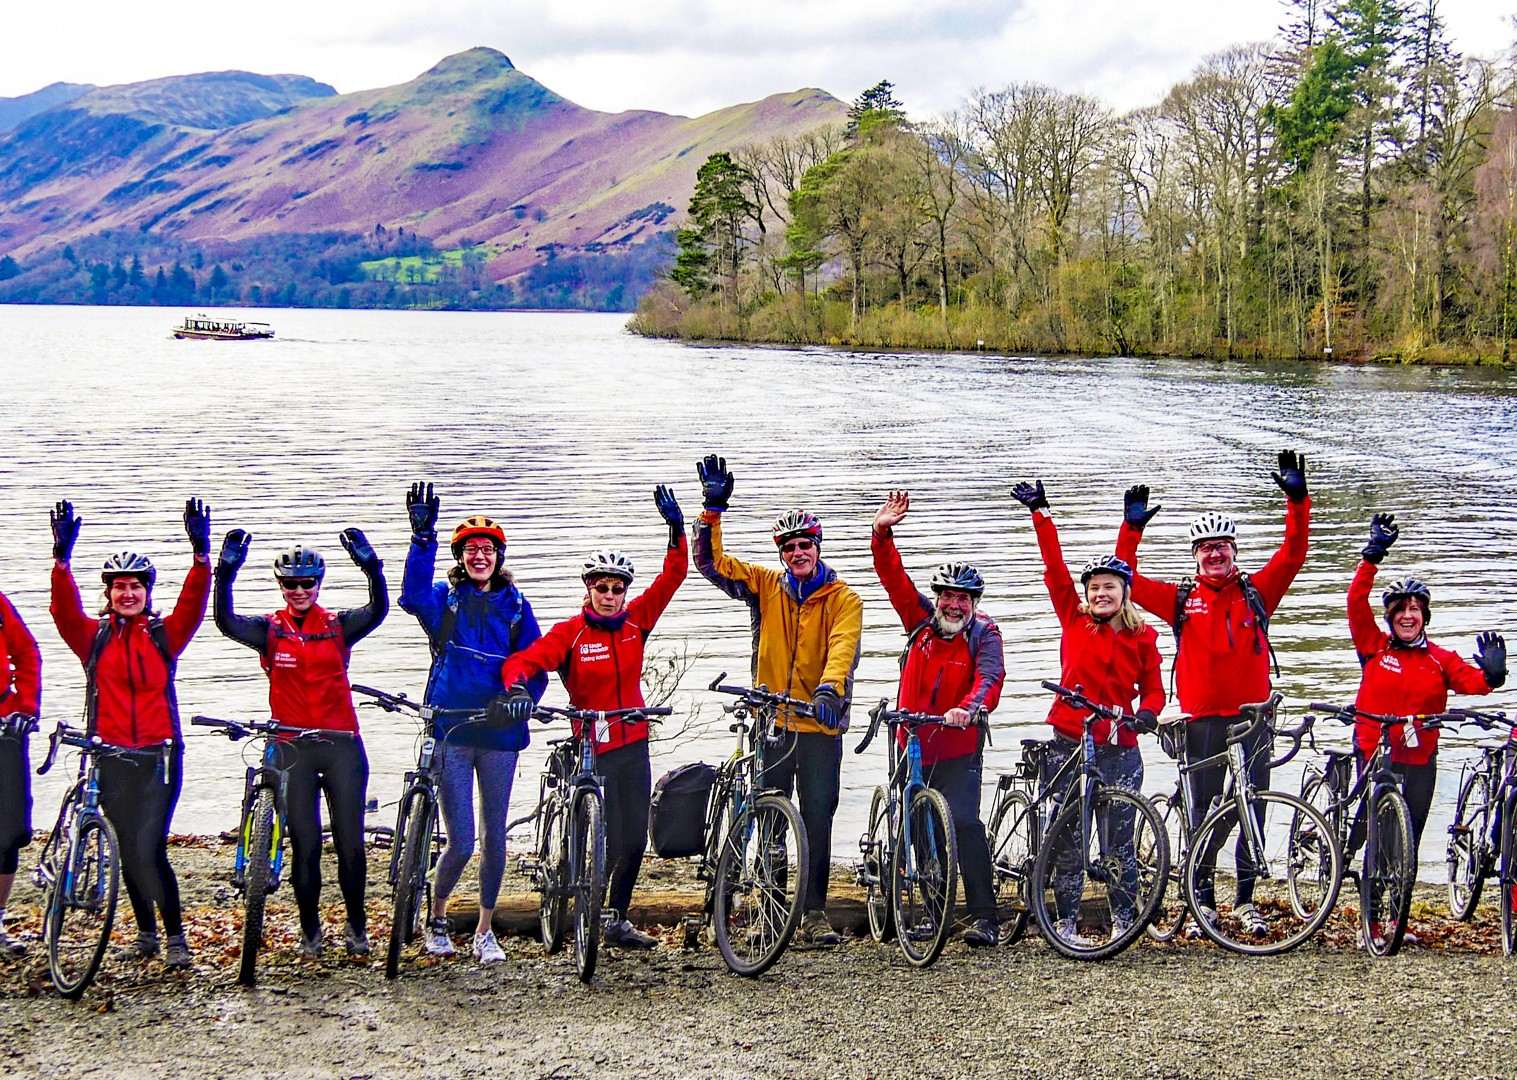 happy-fun-family-friends-guided-group-cycling-tour-lake-district.jpg - UK - Lake District - Derwent Water - Guided Leisure Cycling Holiday - Leisure Cycling